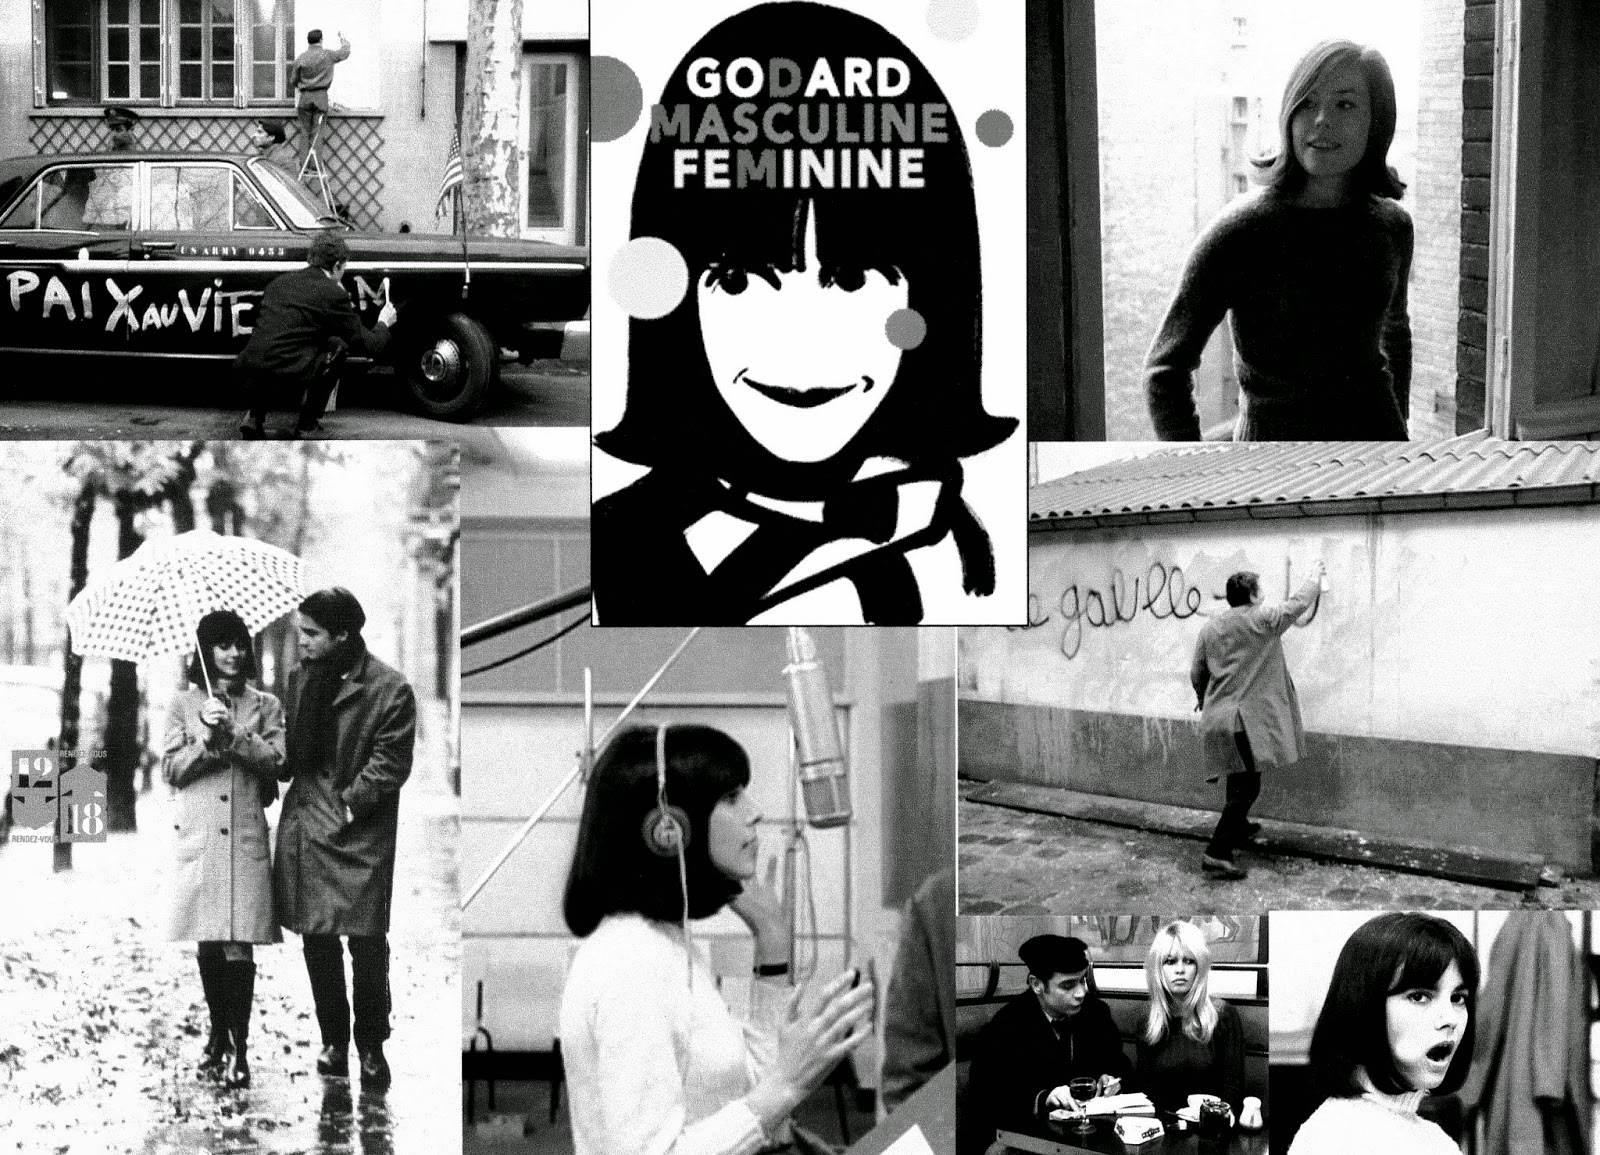 a review of the film godards masculine feminine Directed by jean-luc godard with jean-pierre léaud, chantal goya, marlène jobert, michel debord shouldn't work, but thanks to its dedicated portrayal of the motivations and thoughts of the sixties french adolescents and young adults, it does.